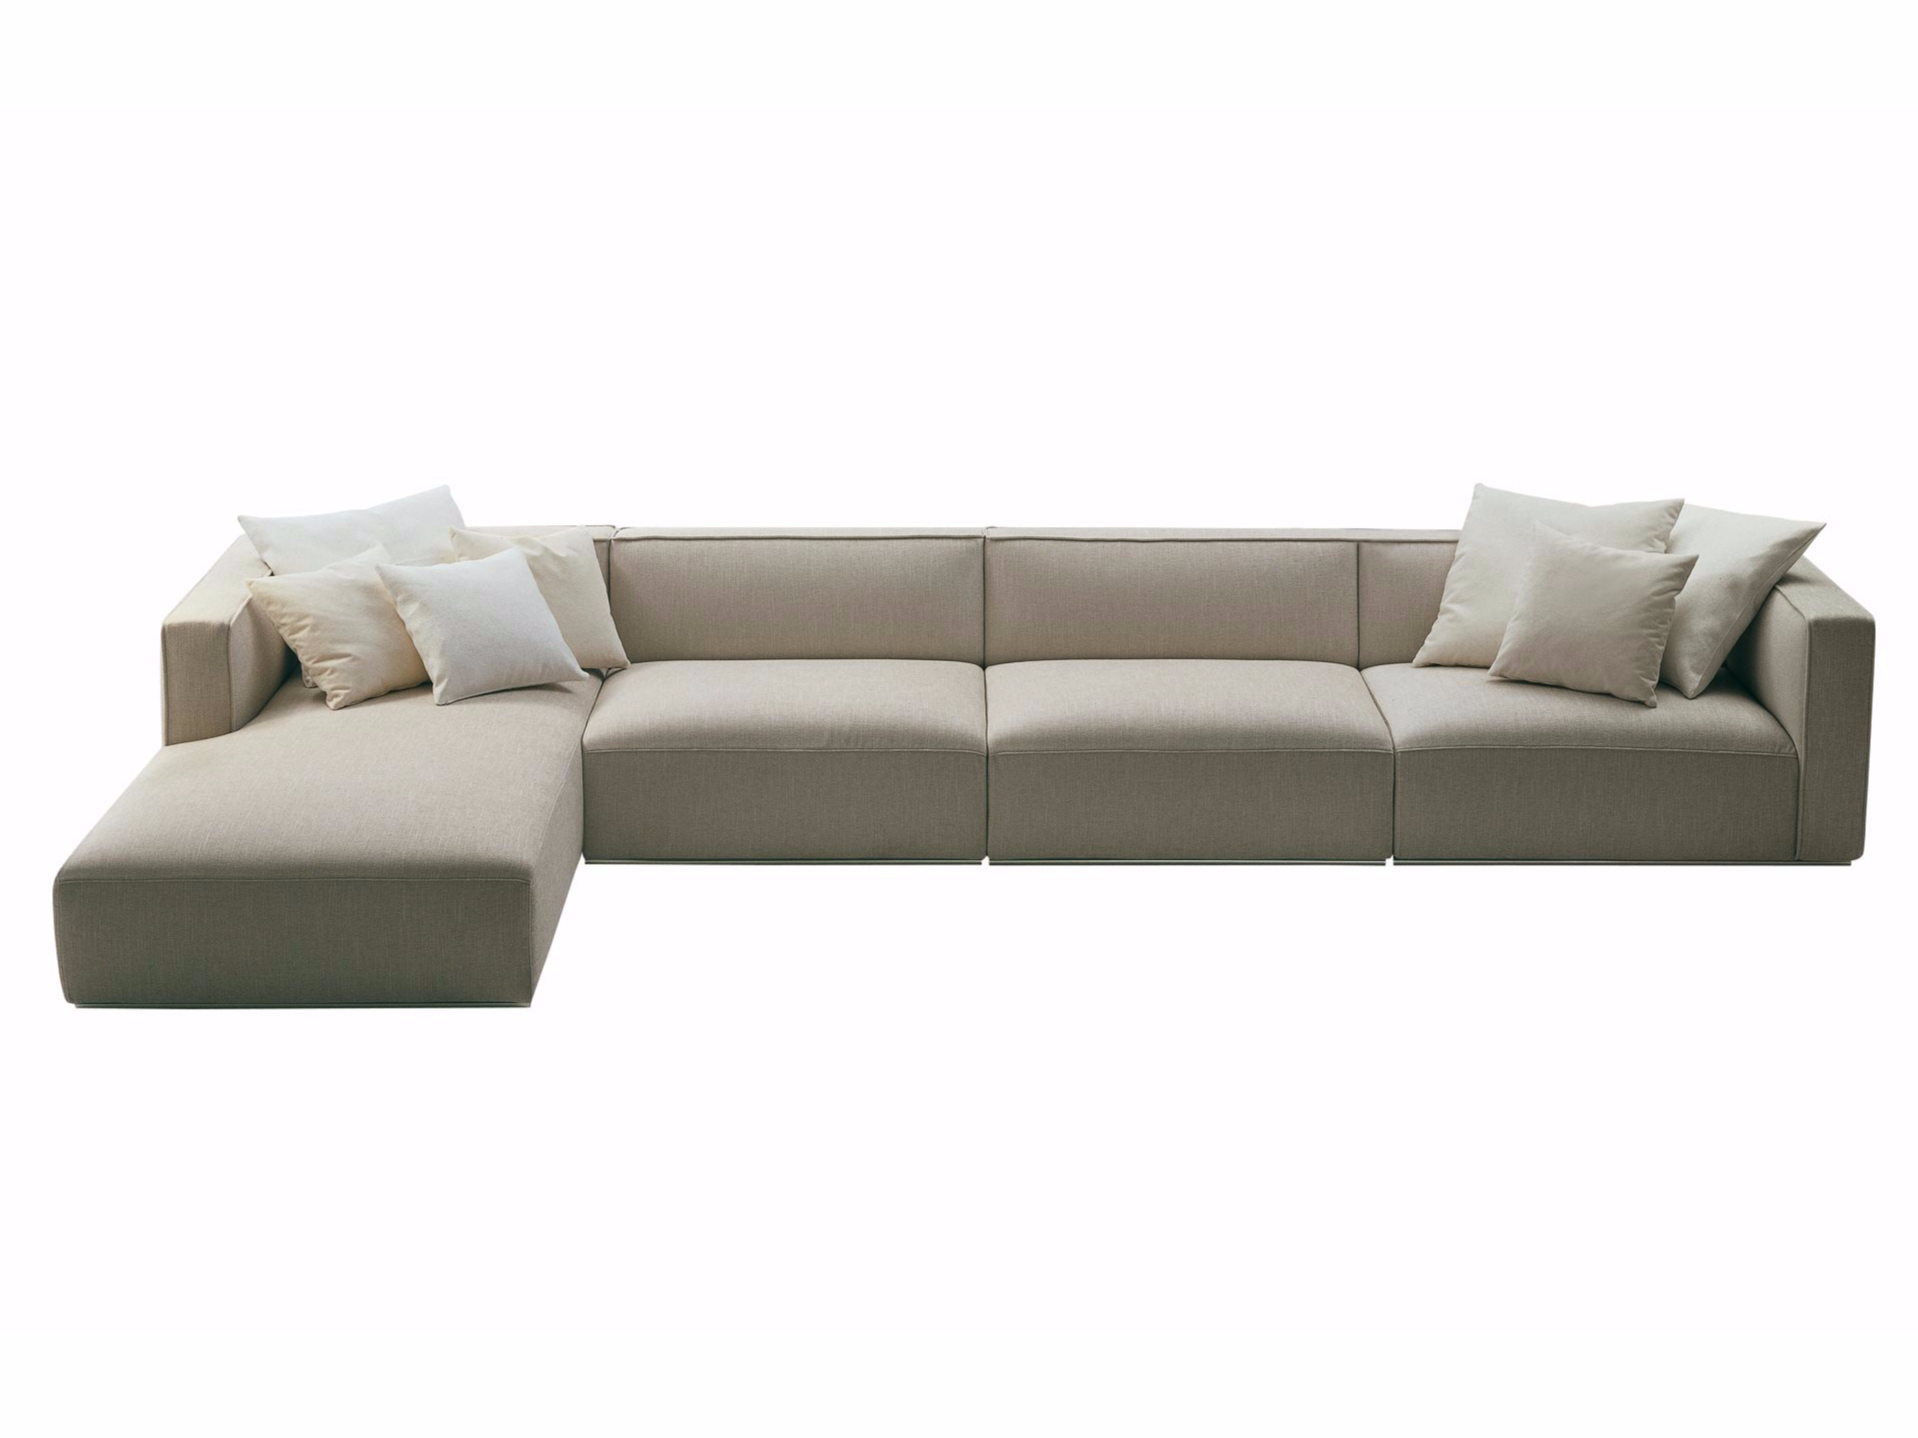 Shangai sofa with chaise longue shangai collection by for Chaise longue sofa